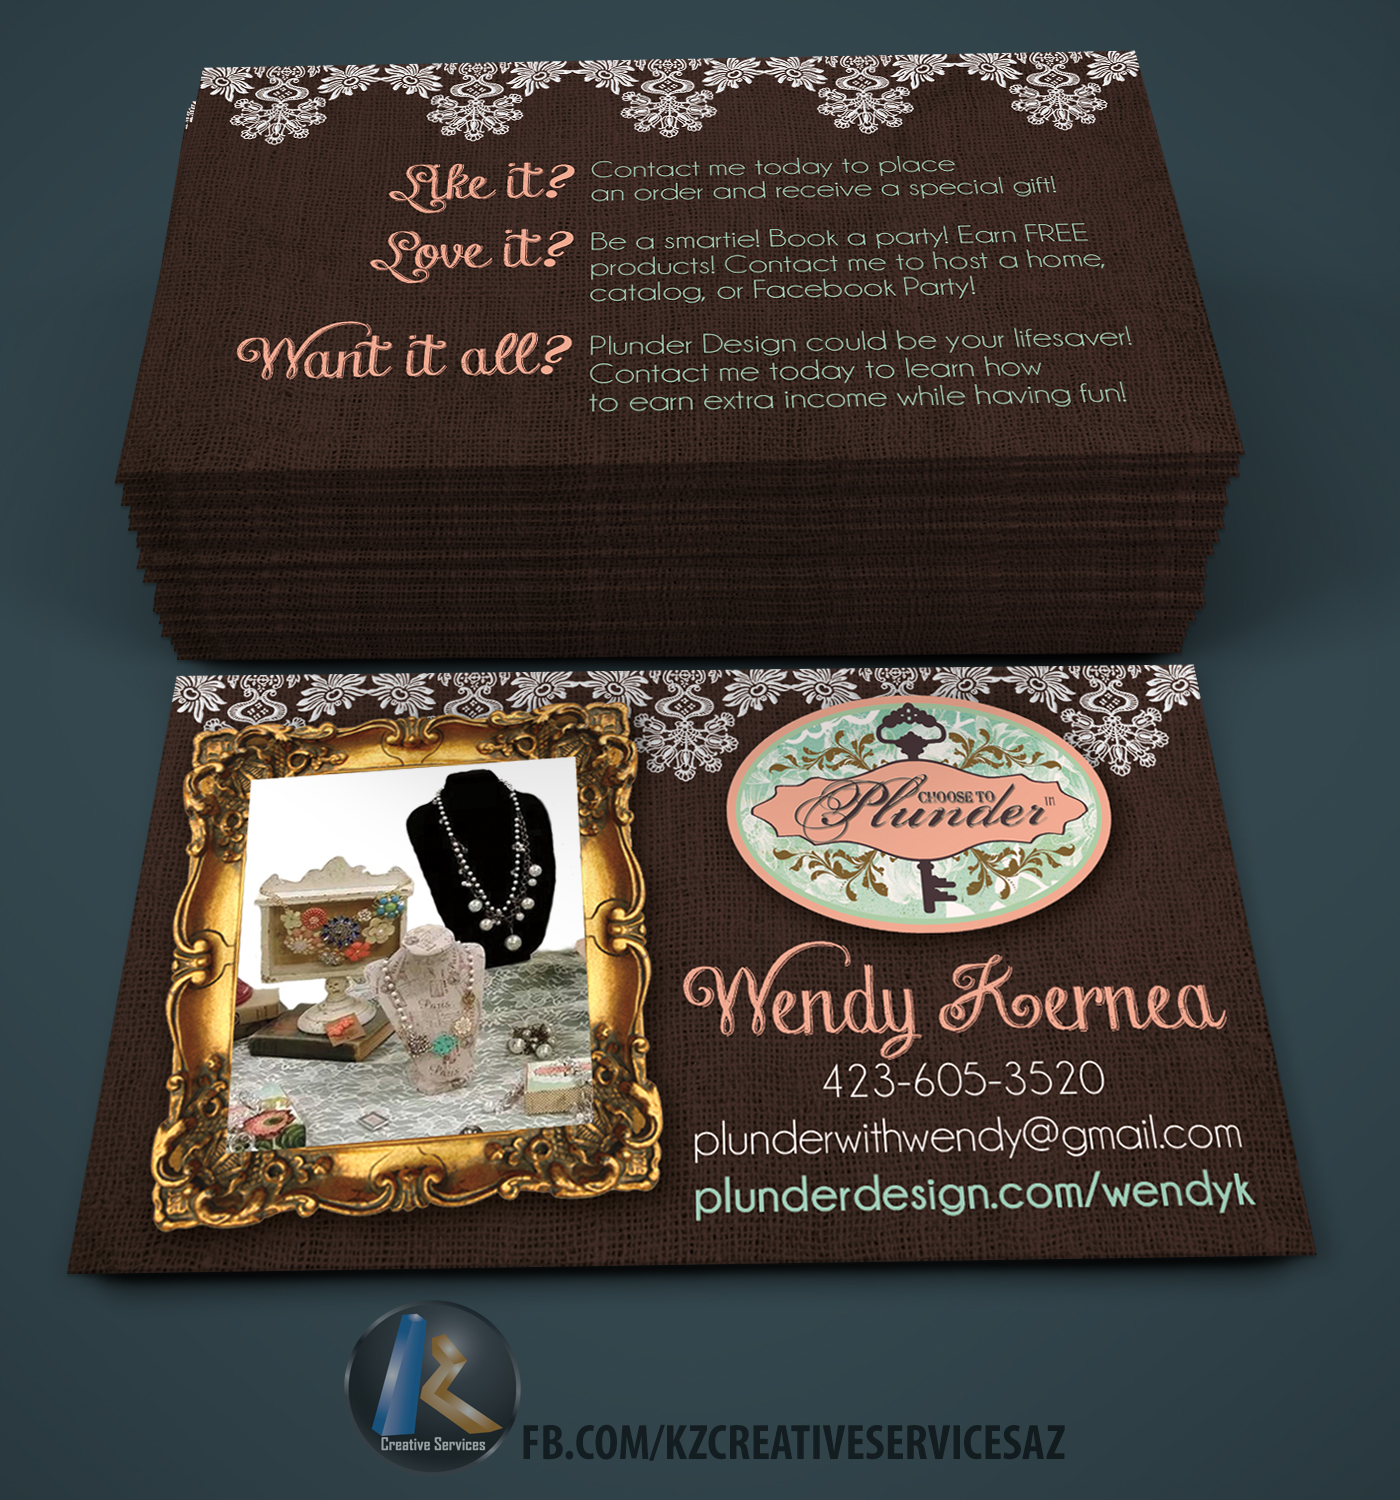 Plunder Design Business Cards Style 1 Kz Creative Services